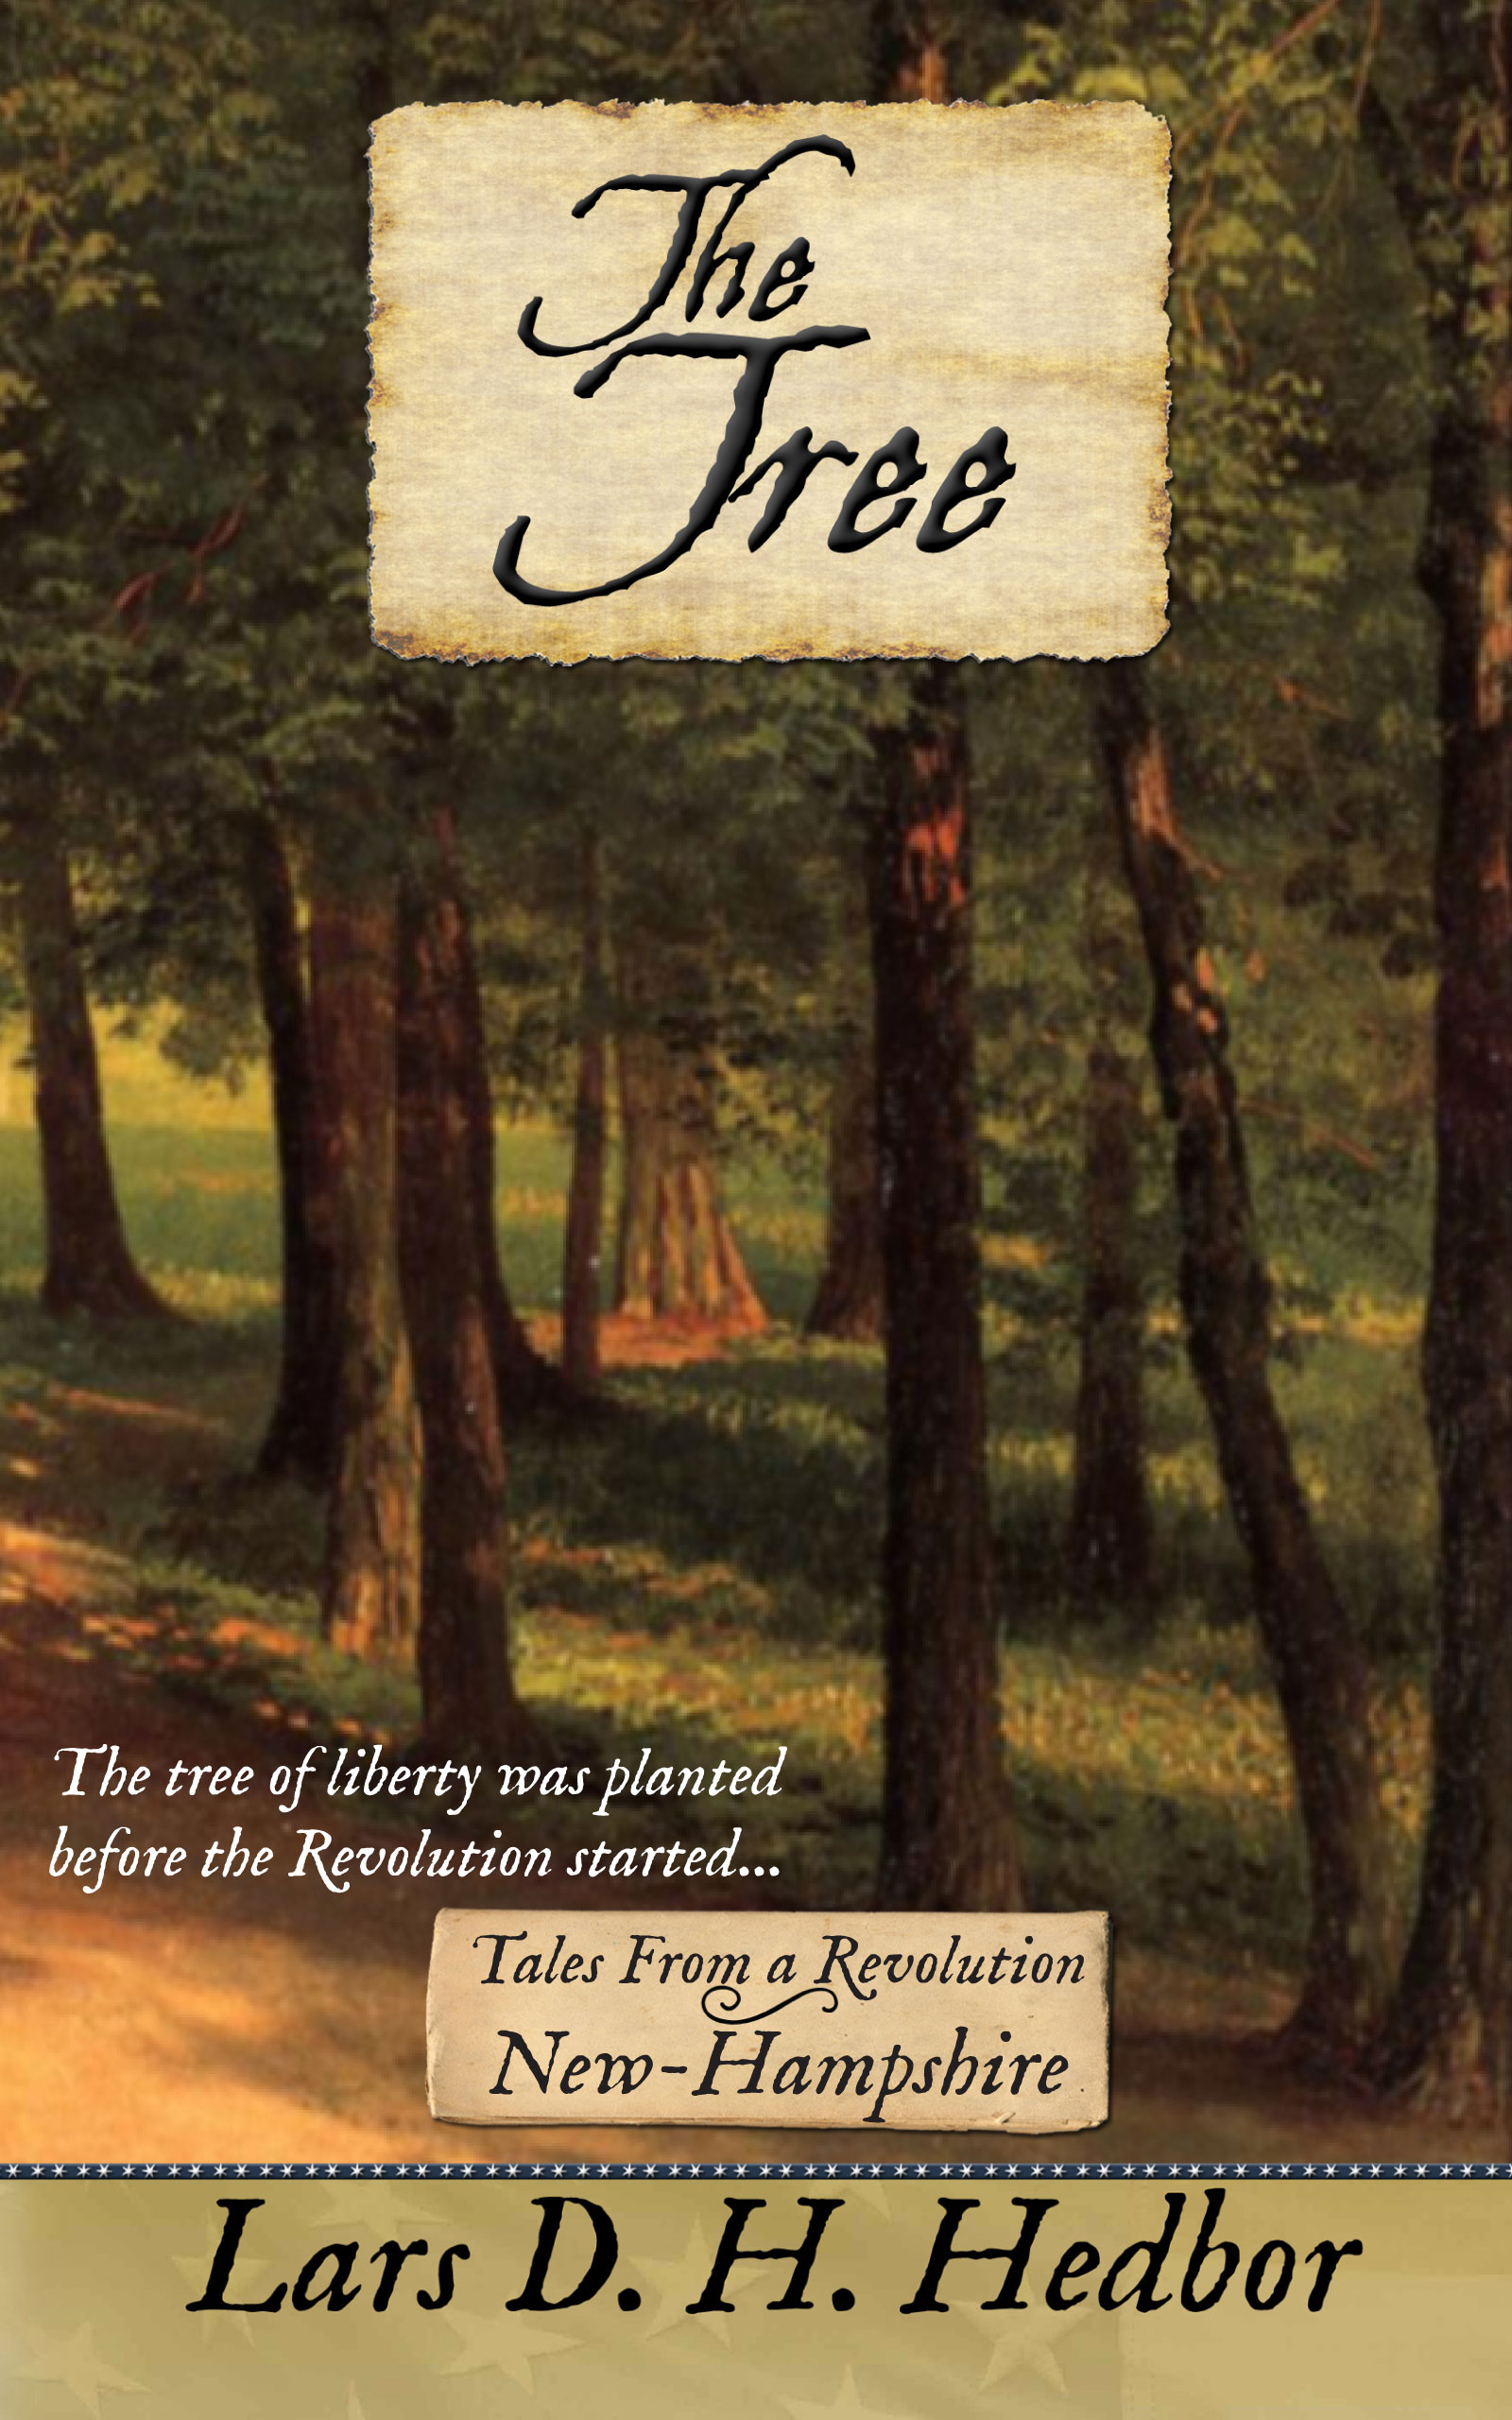 Cover image for The Tree: Tales From a Revolution - New-Hampshire